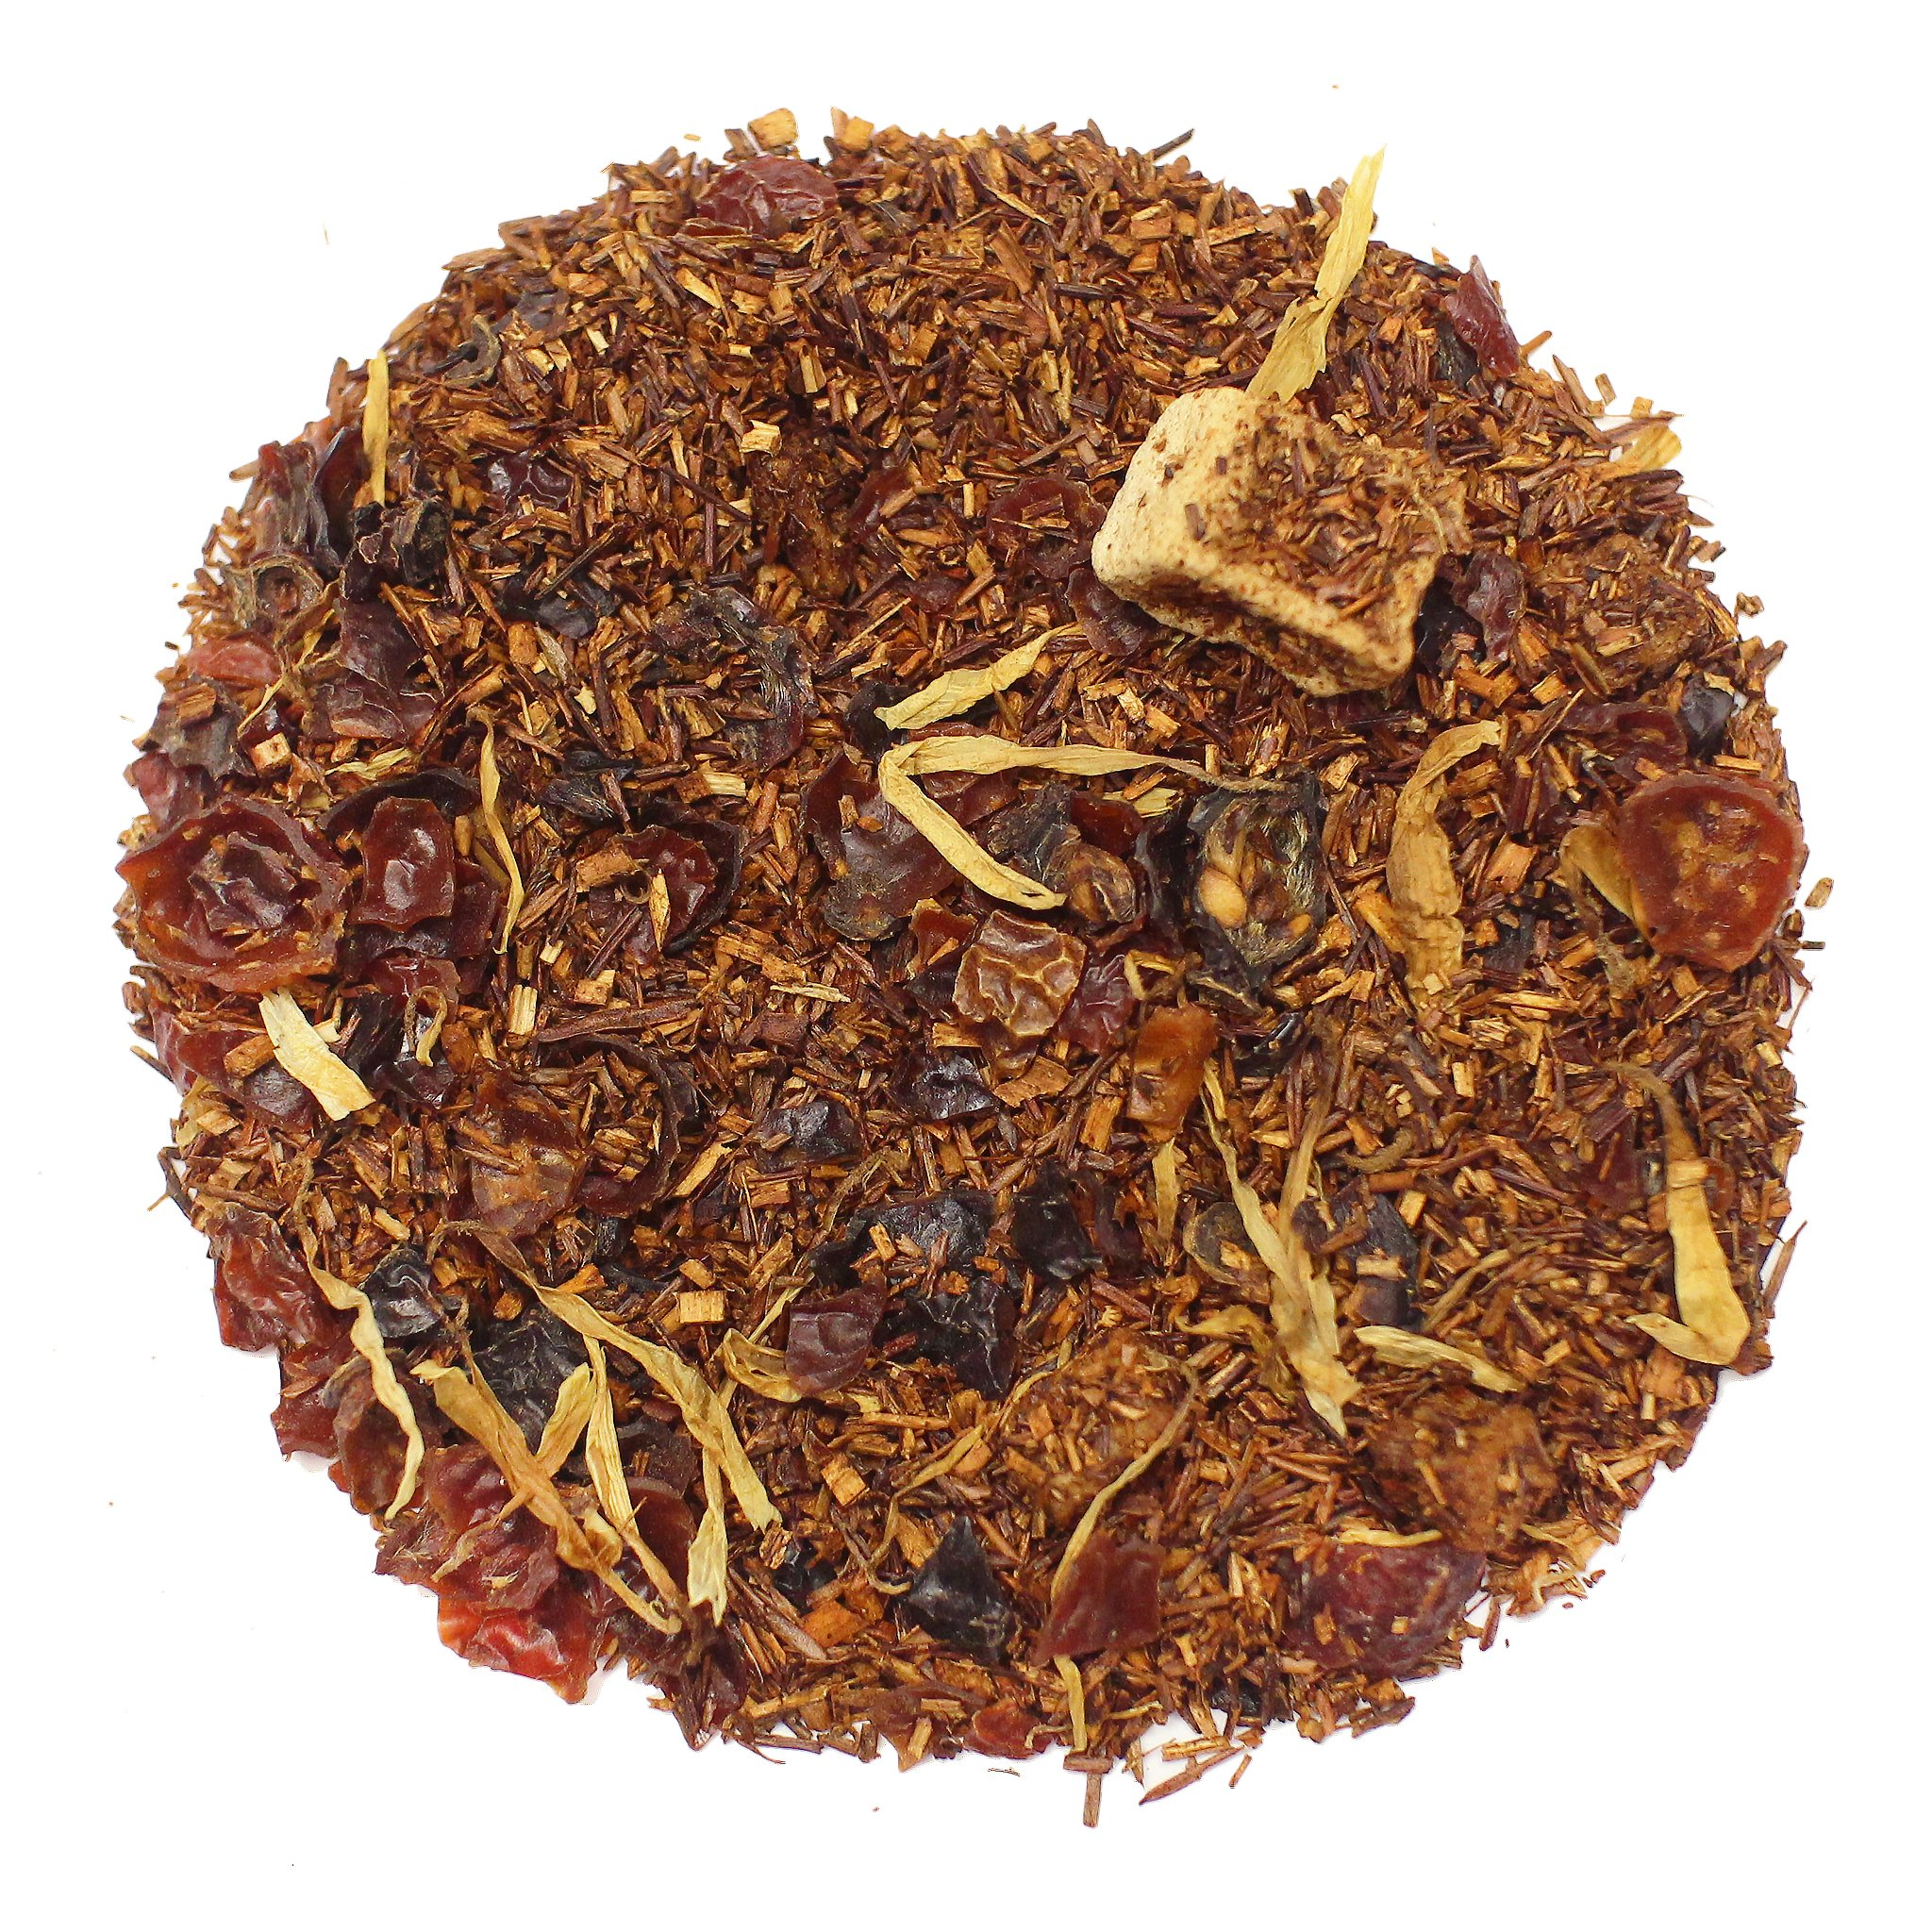 The Tea Farm - Mango Rose Hip Rooibos Herbal Tea - Loose Herbal Tea (8 Ounce Bag) by The Tea Farm